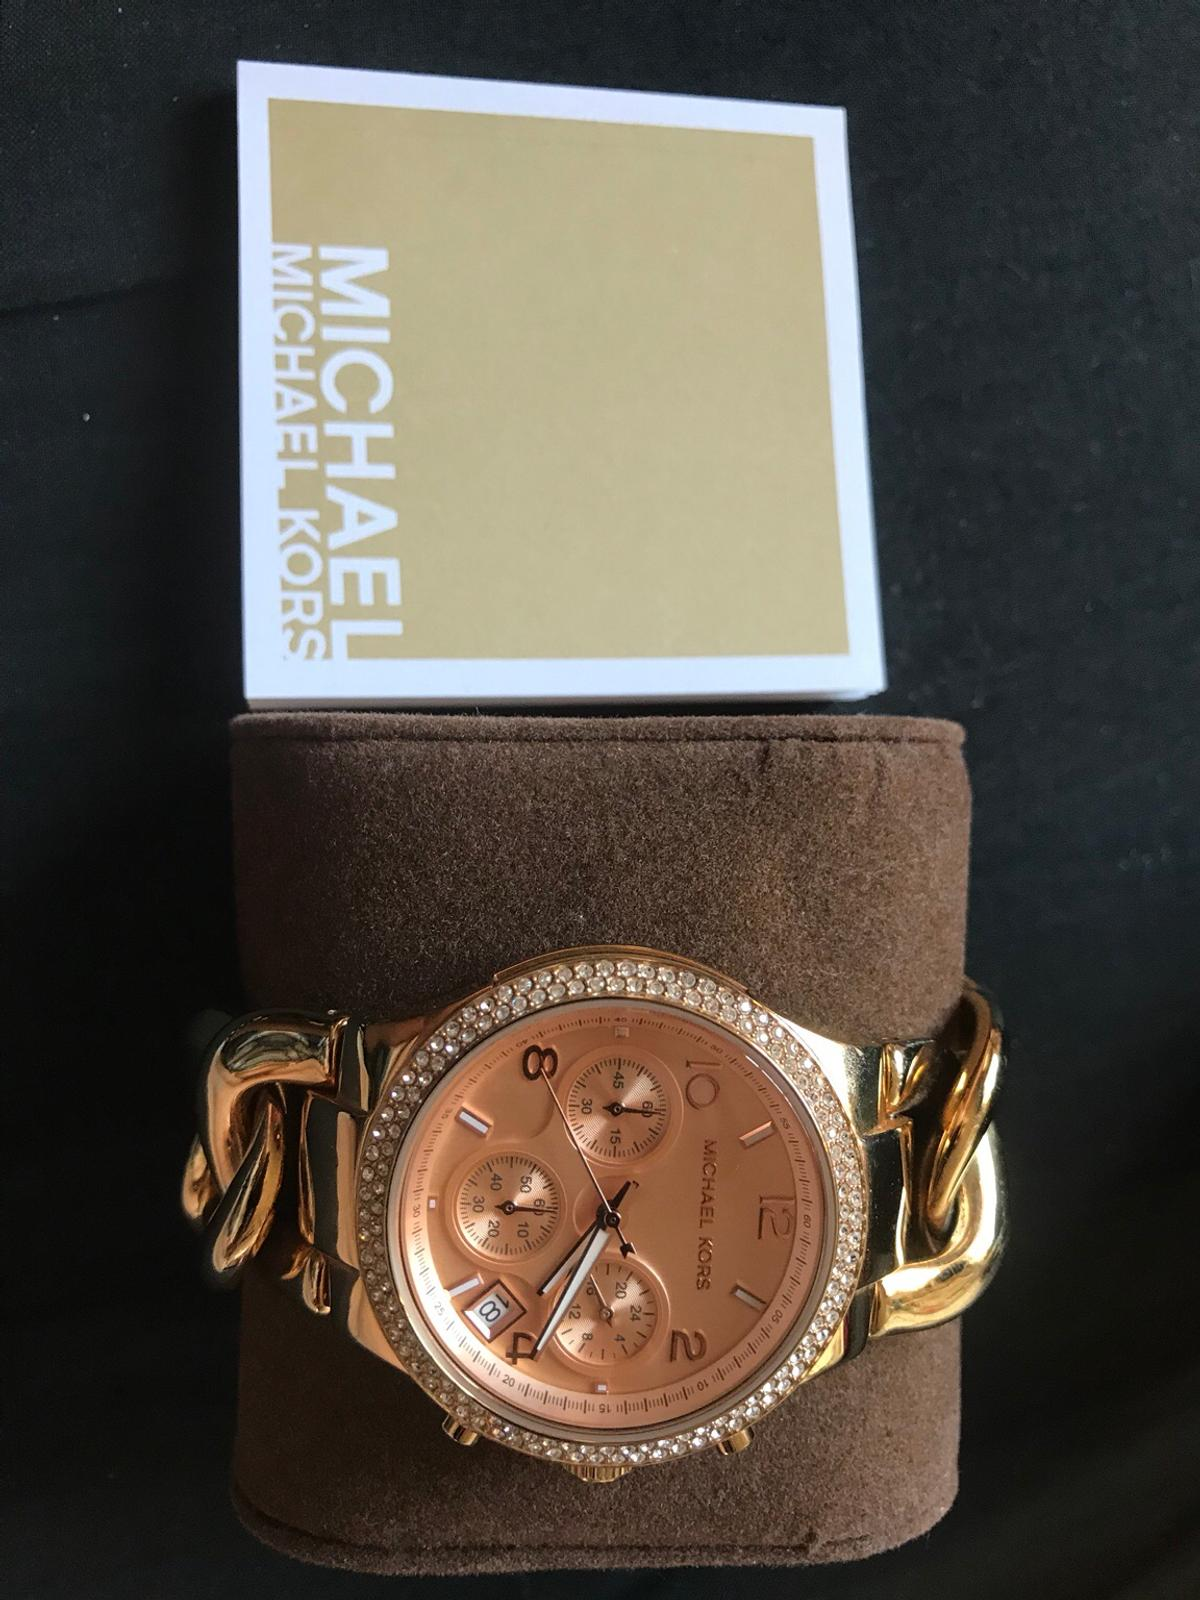 Michael Kors Damen Armbanduhr MK 3247 Gold in 61267 Neu